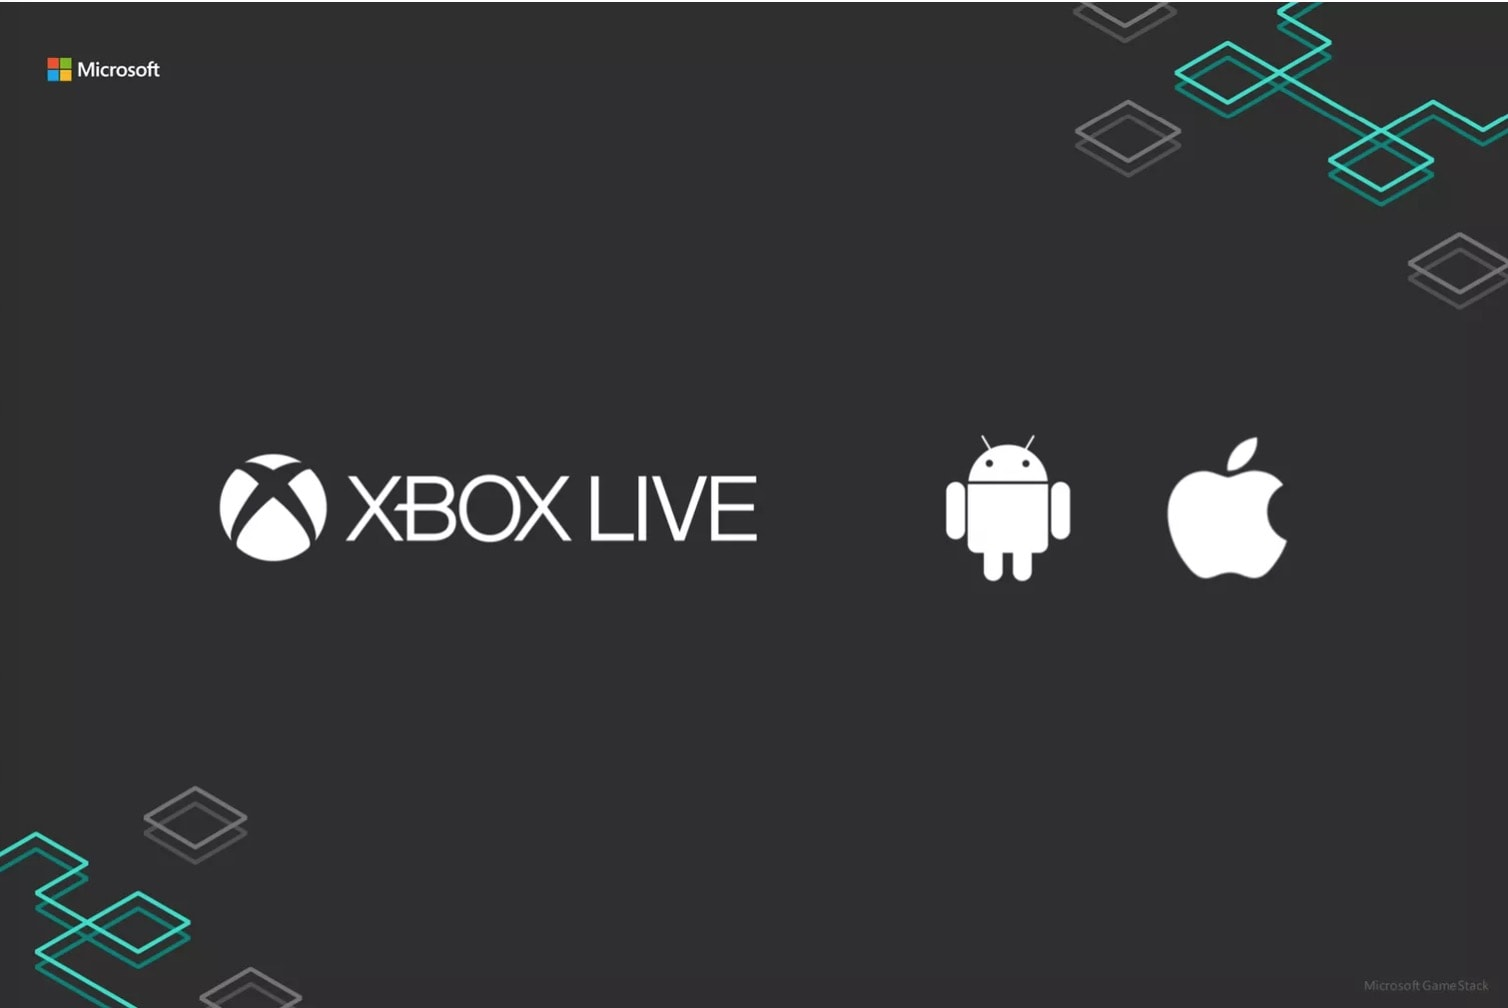 Xbox Live is Finally Available on iOS and Android